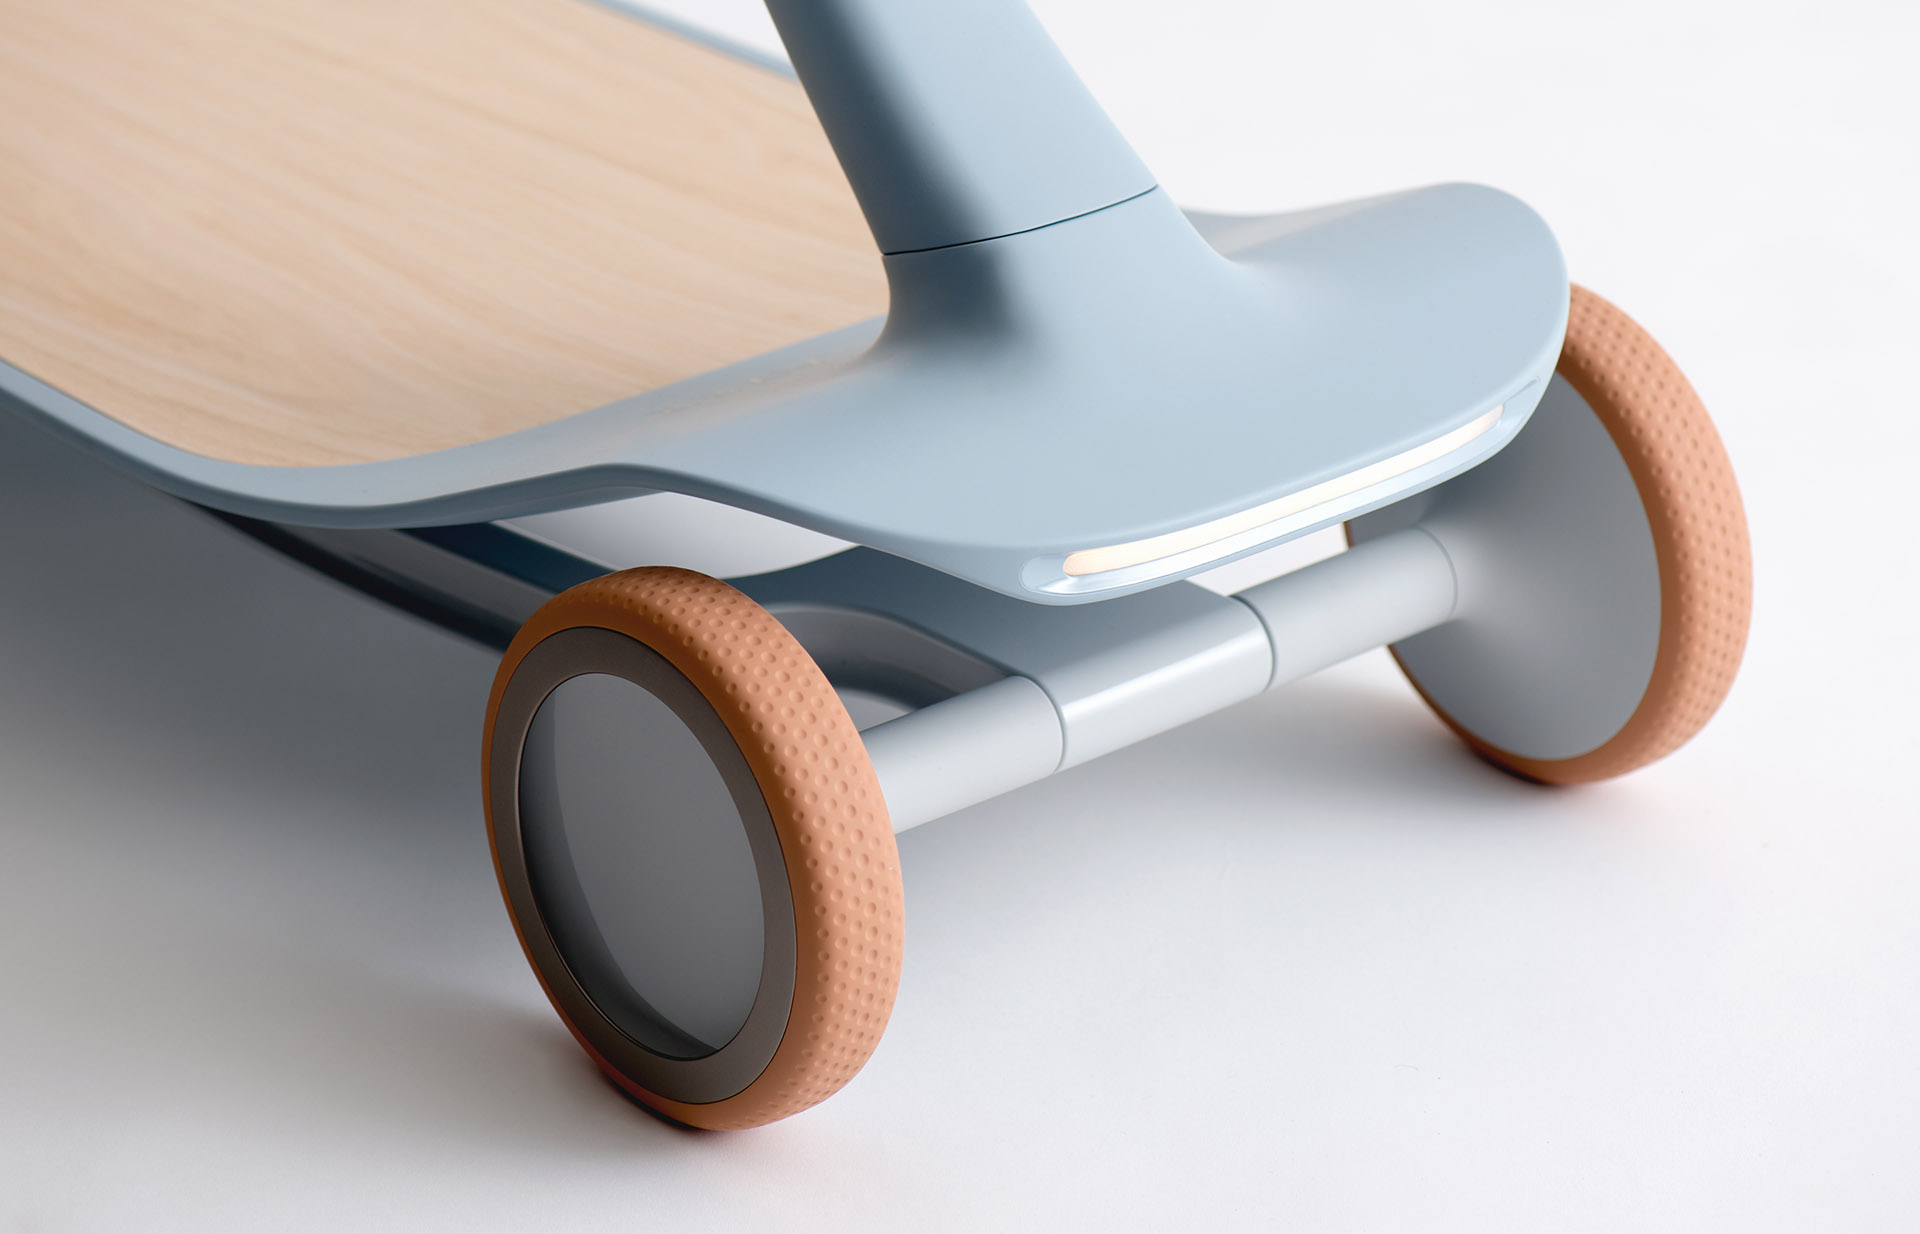 PAL - A smart modular personal transport system